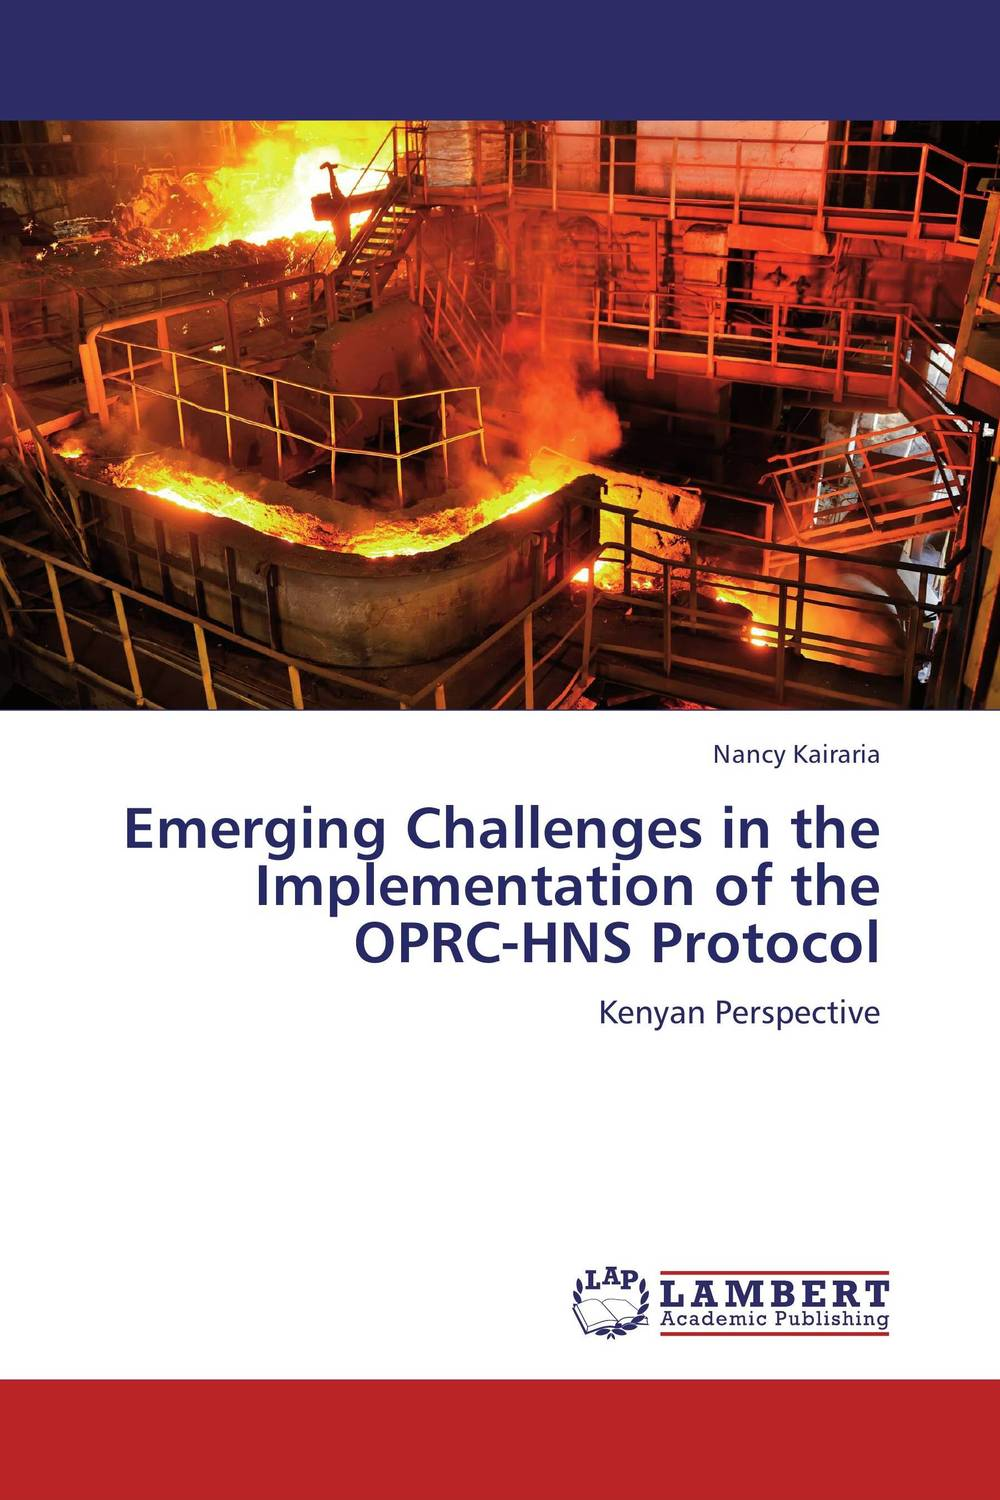 Emerging Challenges in the Implementation of the OPRC-HNS Protocol emerging challenges in the implementation of the oprc hns protocol